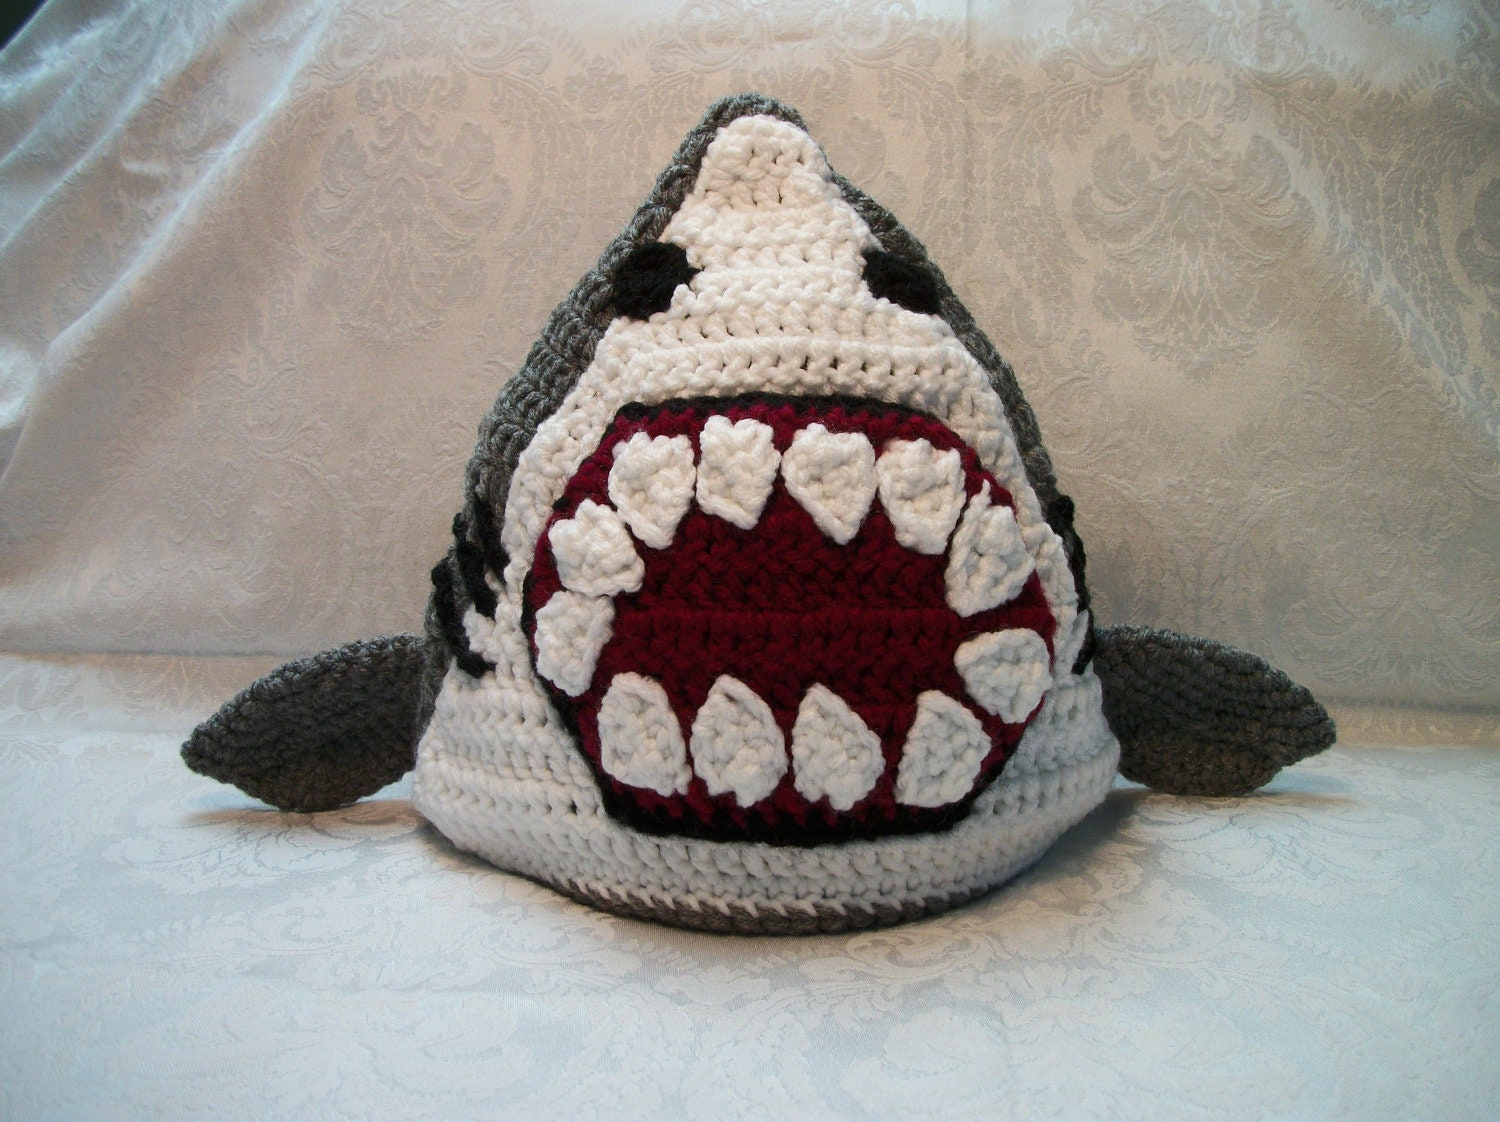 Crocheted Shark Hat by MamawsMadness on Etsy